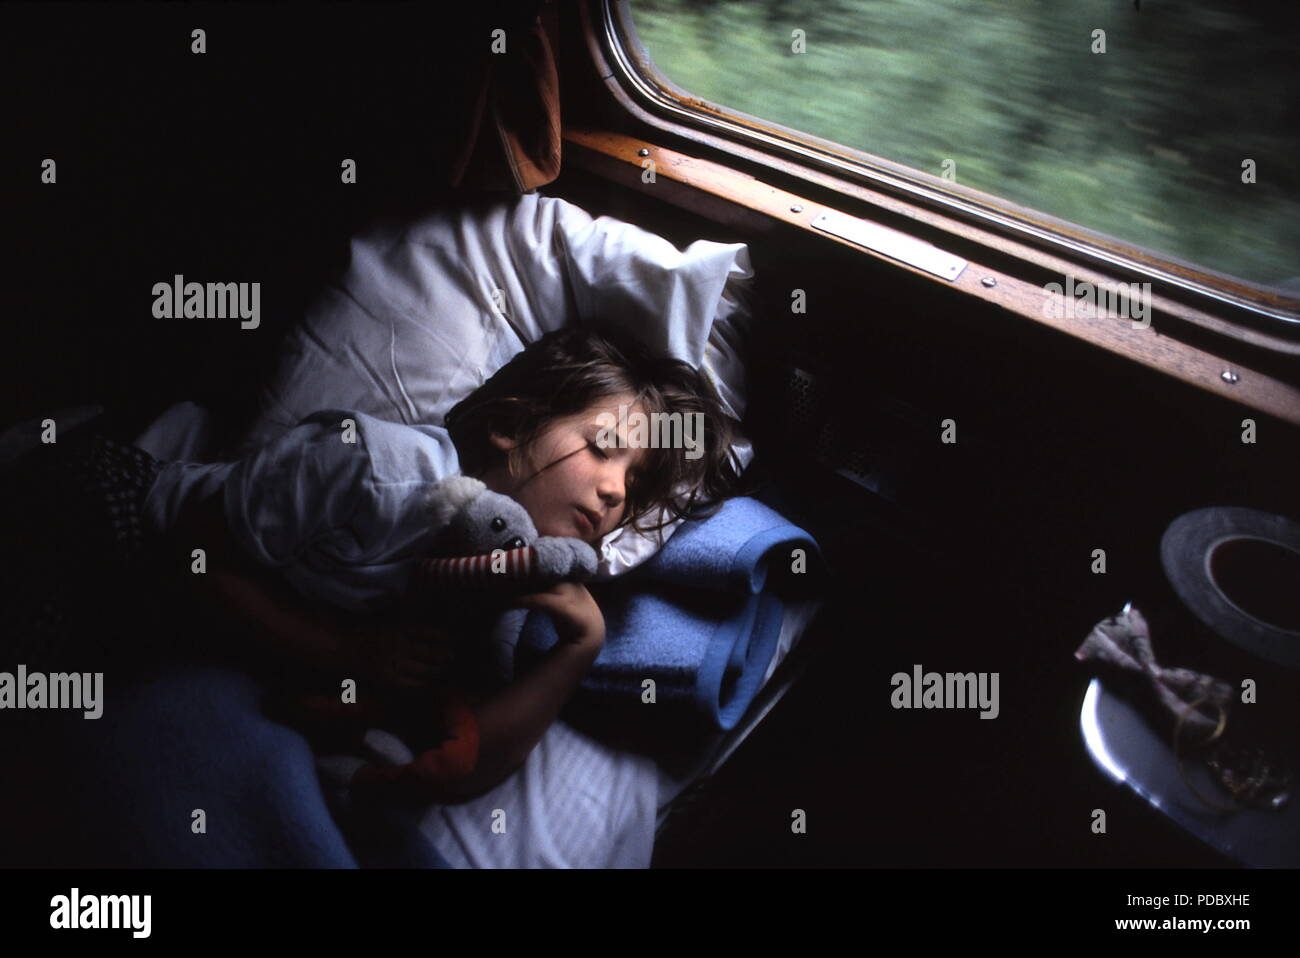 AJAXNETPHOTO. STOCKHOLM - LULEA, SWEDEN. - NIGHT TRAIN - YOUNG CHILD RESTING IN BERTH ON OVERNIGHT SLEEPER TRAIN FROM THE CAPITAL TO LULEA NEAR ARCTIC CIRCLE. PHOTO:JONATHAN EASTLAND/AJAX REF:920259 - Stock Image